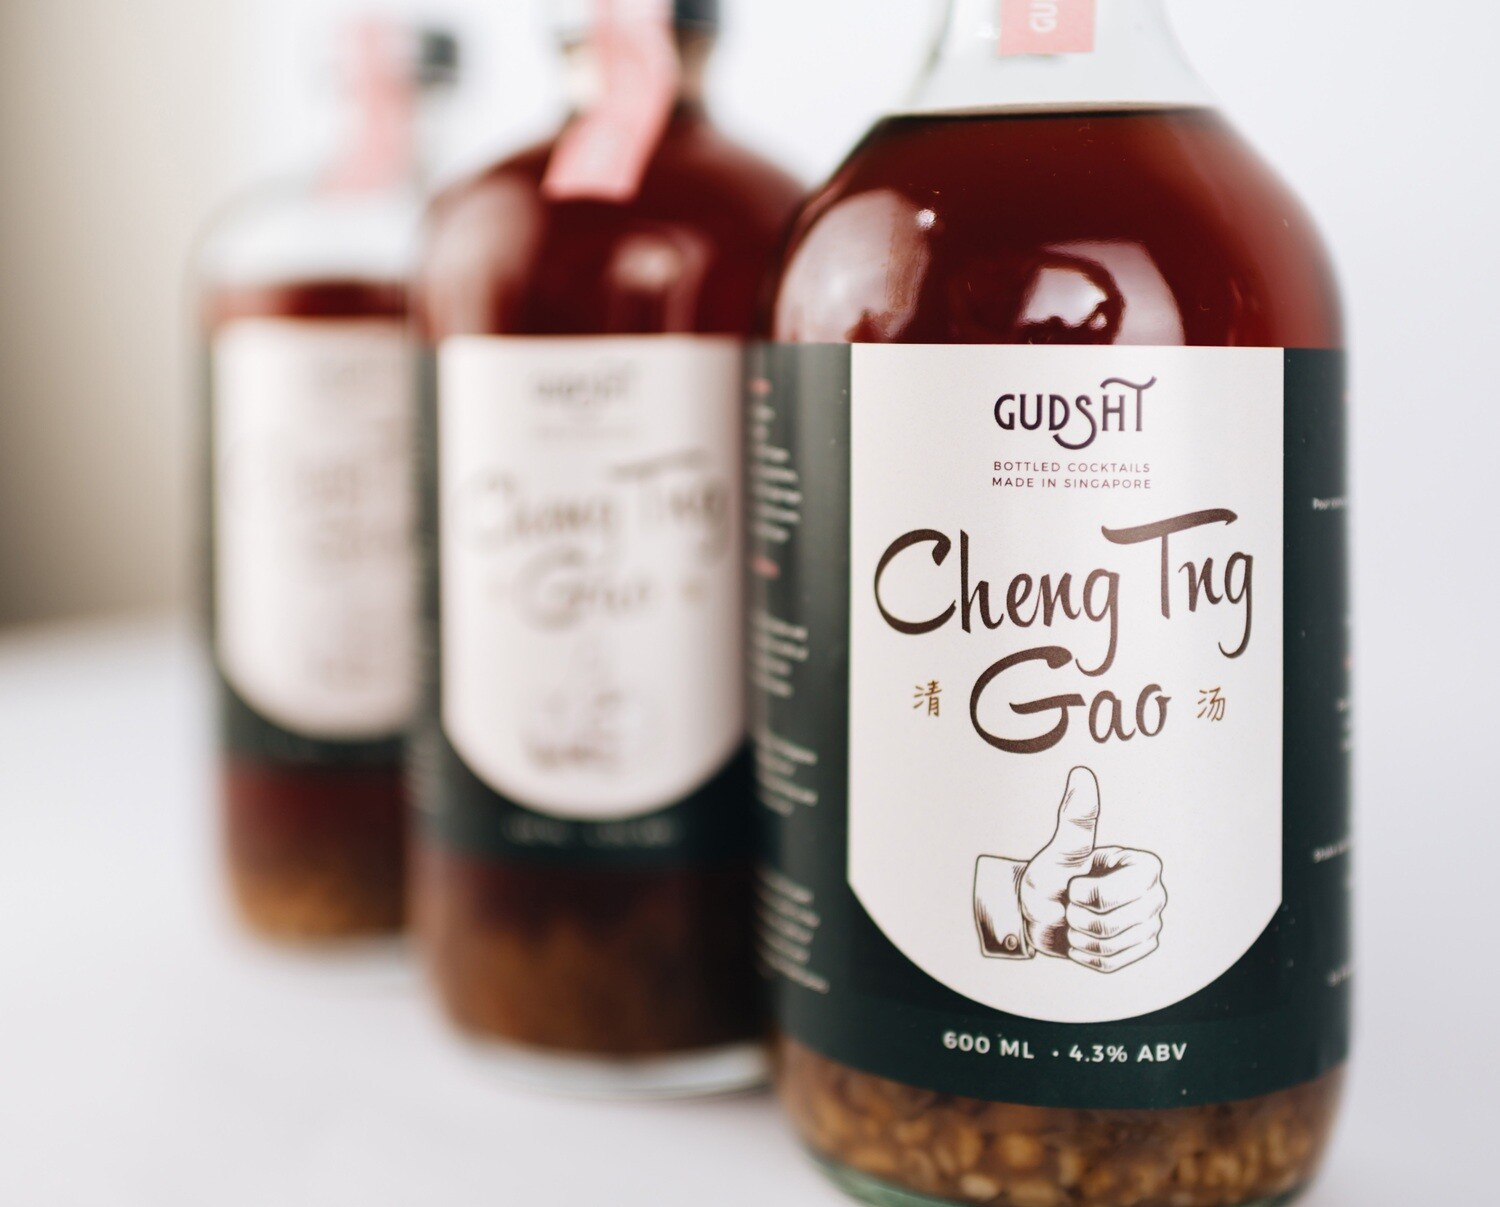 Cheng Tng Gao Bottled Cocktail by The Refinery x Gudsht